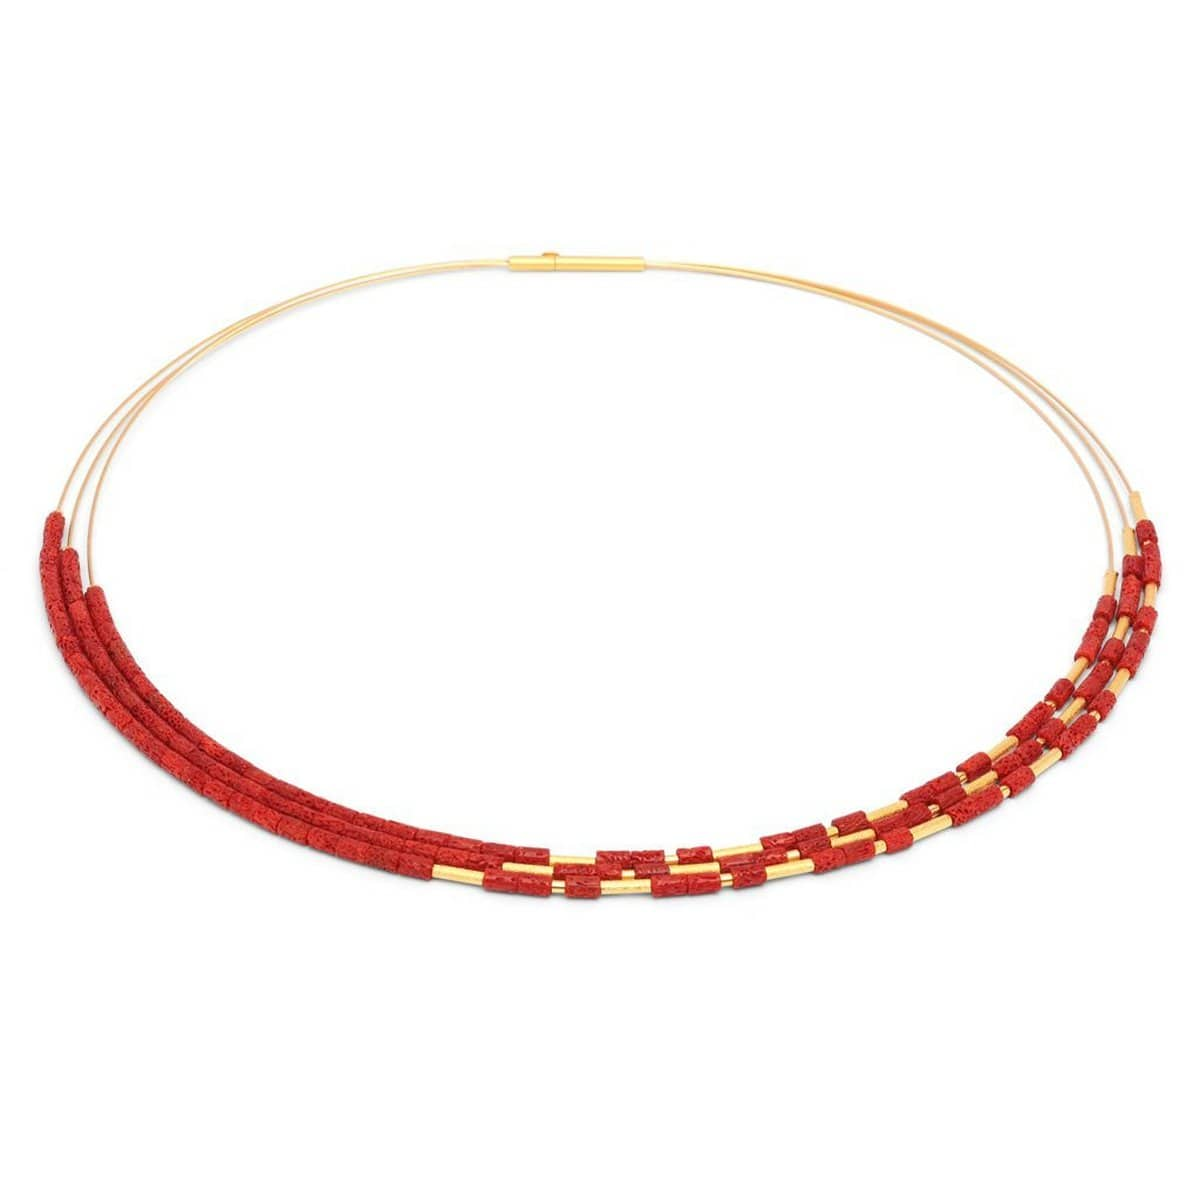 Clia Red Coral Necklace - 85231296 - Bernd Wolf